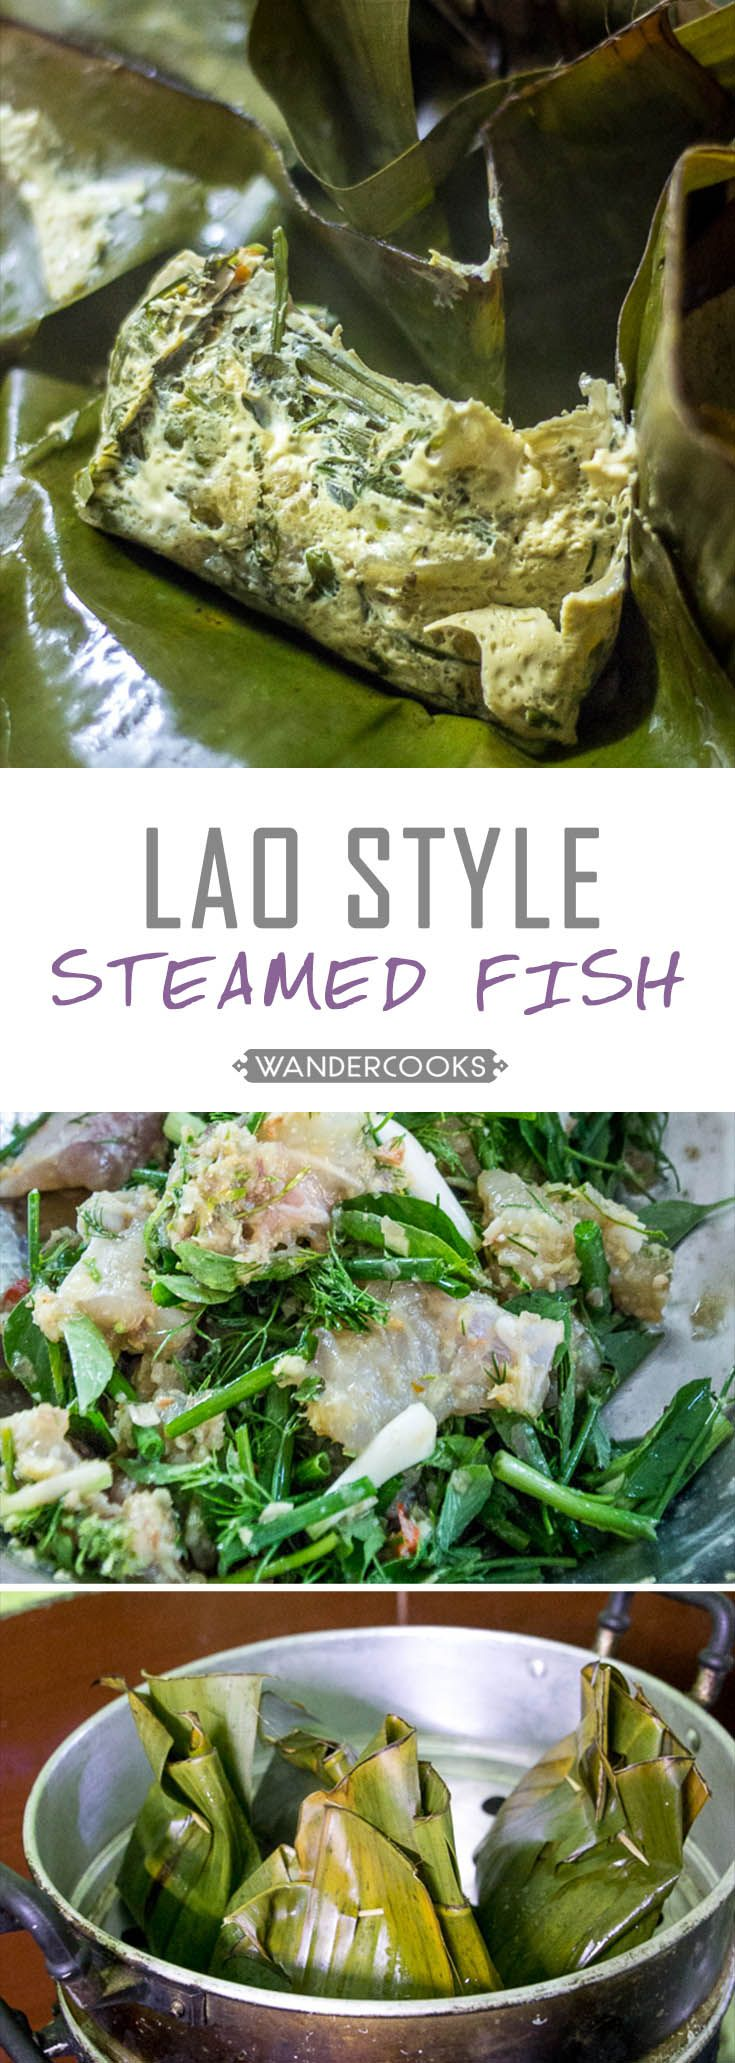 Lao Steamed Fish - Bursting fresh from the banana leaf, this flavour infused fish is melt-in-your-mouth goodness. Gluten free.   wandercooks.com